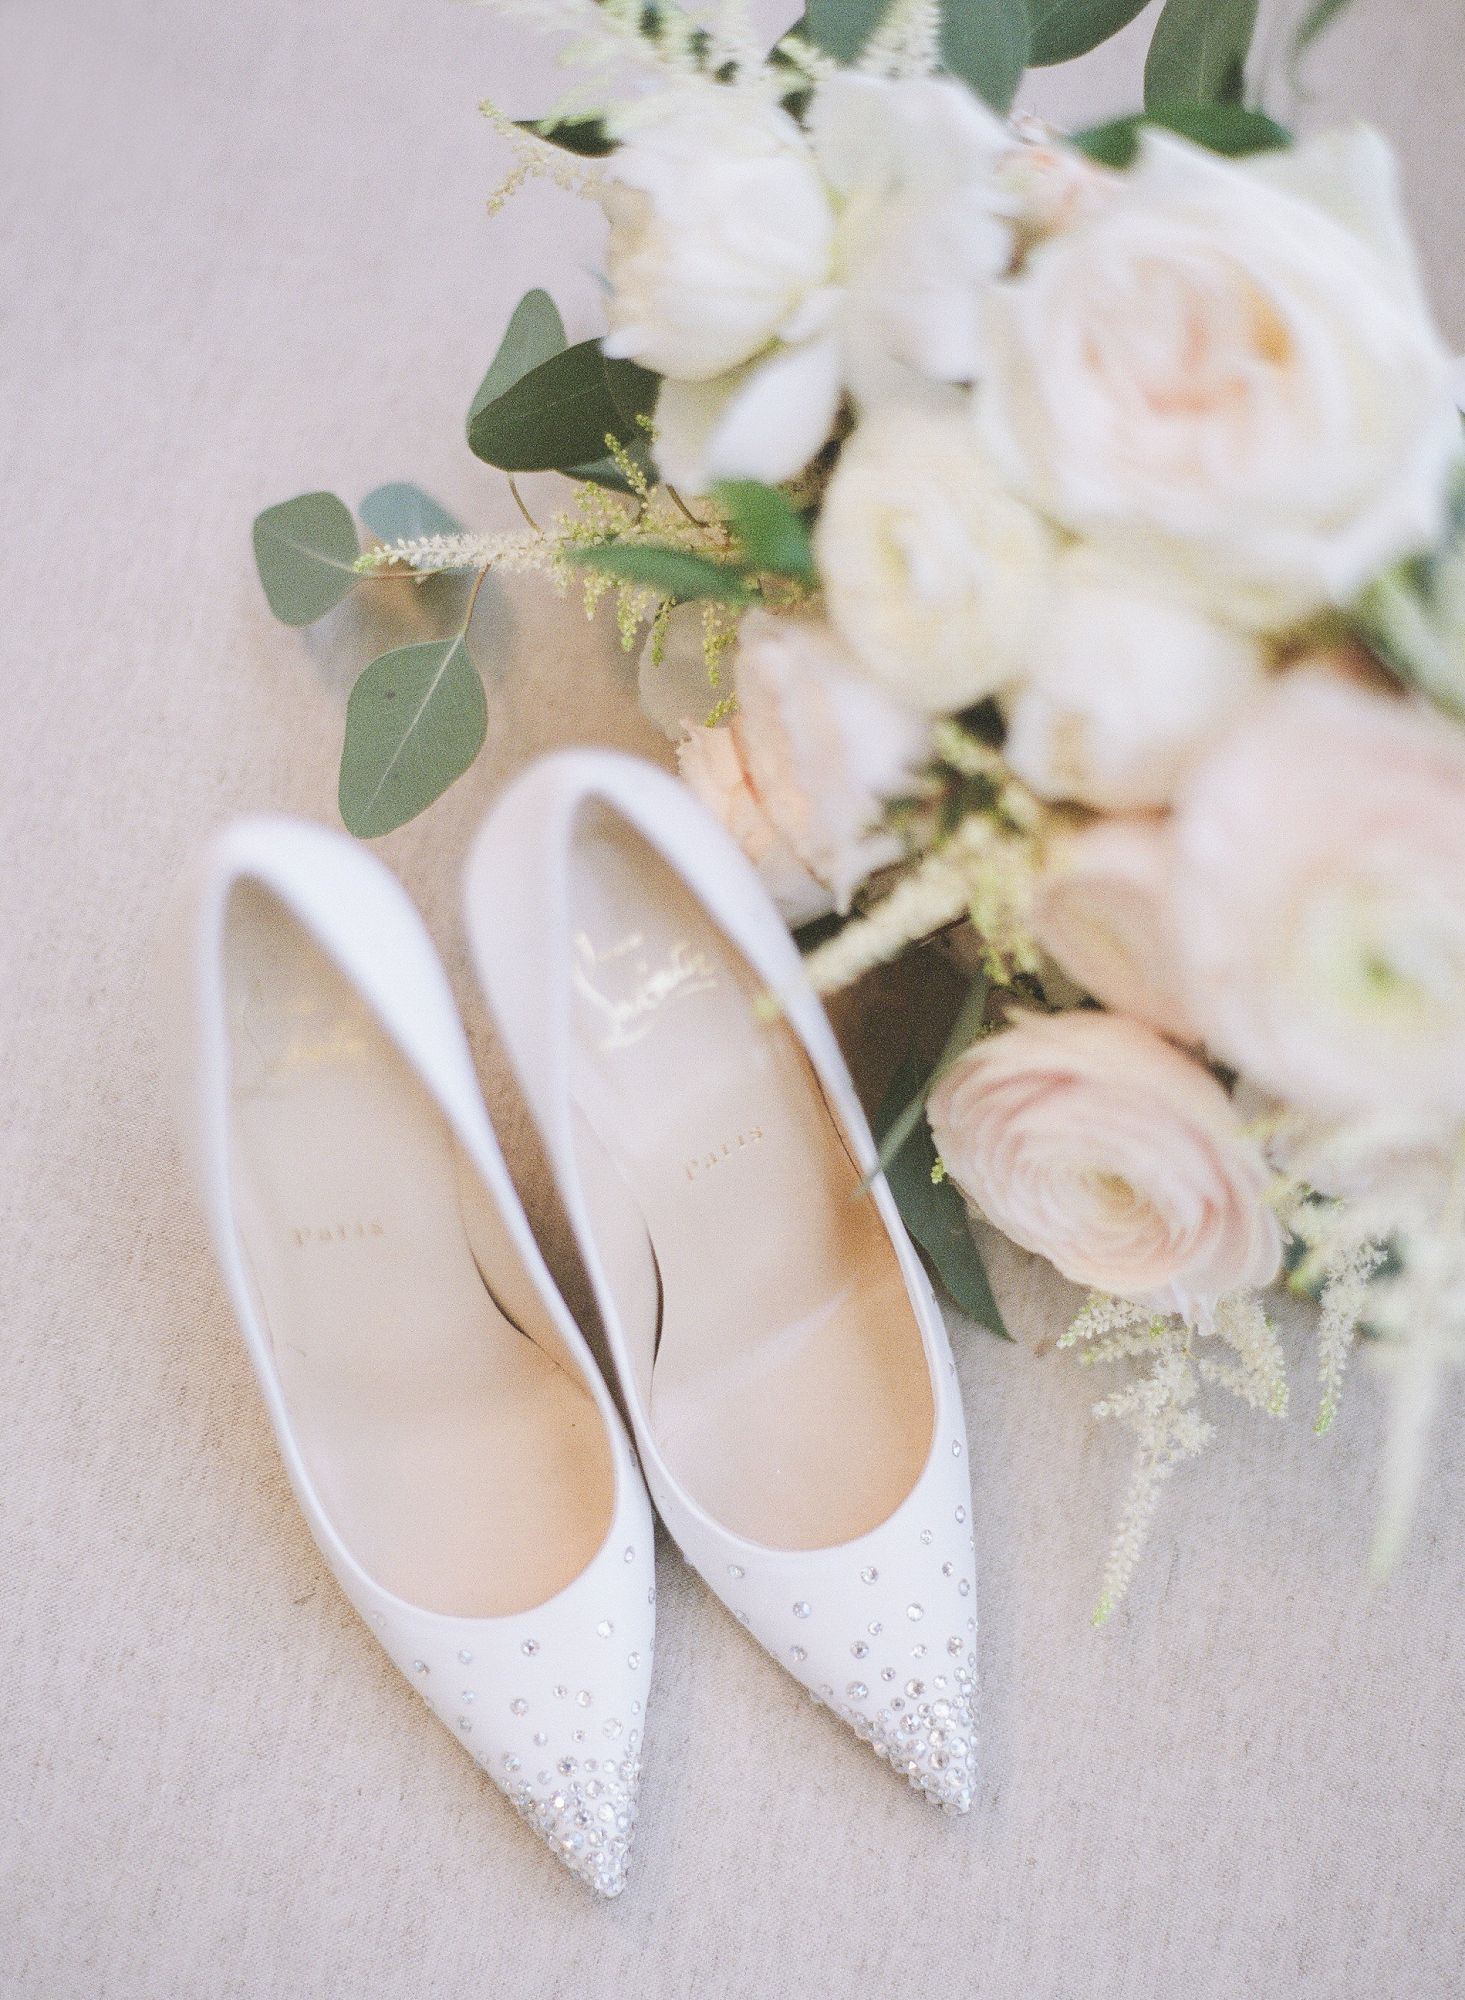 Kerry Hotel Wedding Fair: 18 Events And Workshops You ...